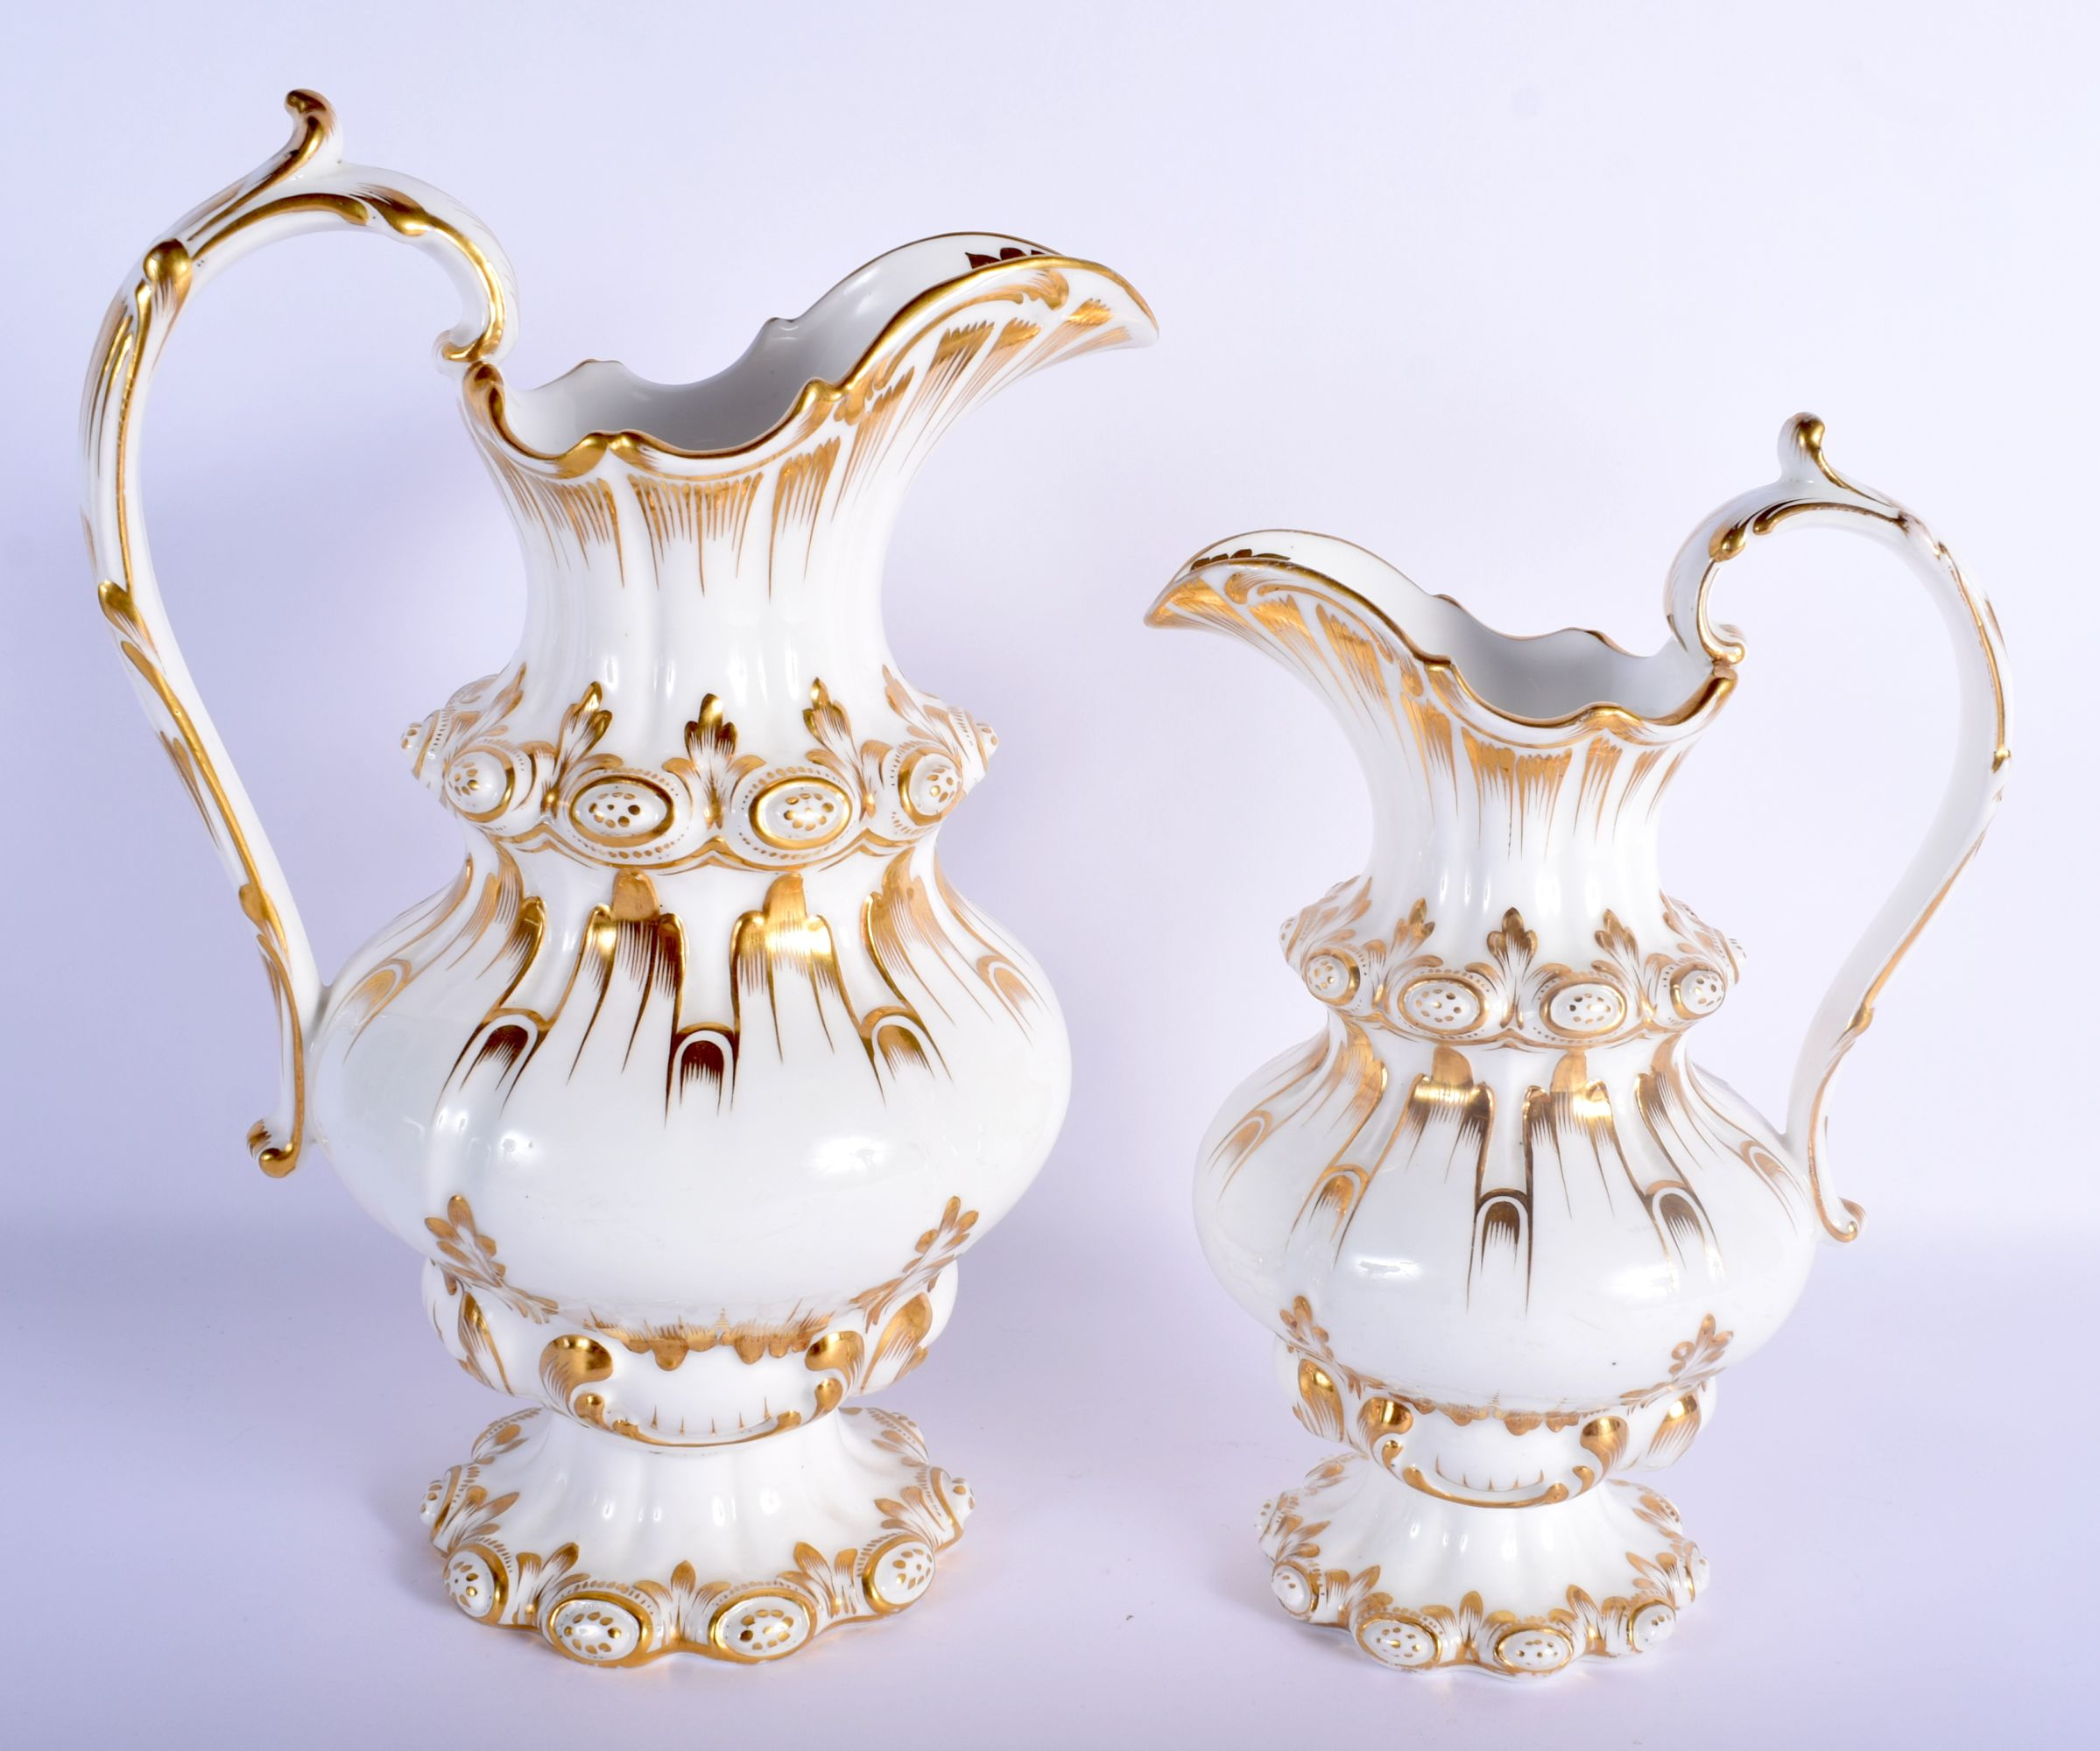 A LARGE NEAR PAIR OF EARLY 19TH CENTURY ENGLISH PORCELAIN JUGS of unusual form, together with a Dave - Image 2 of 4